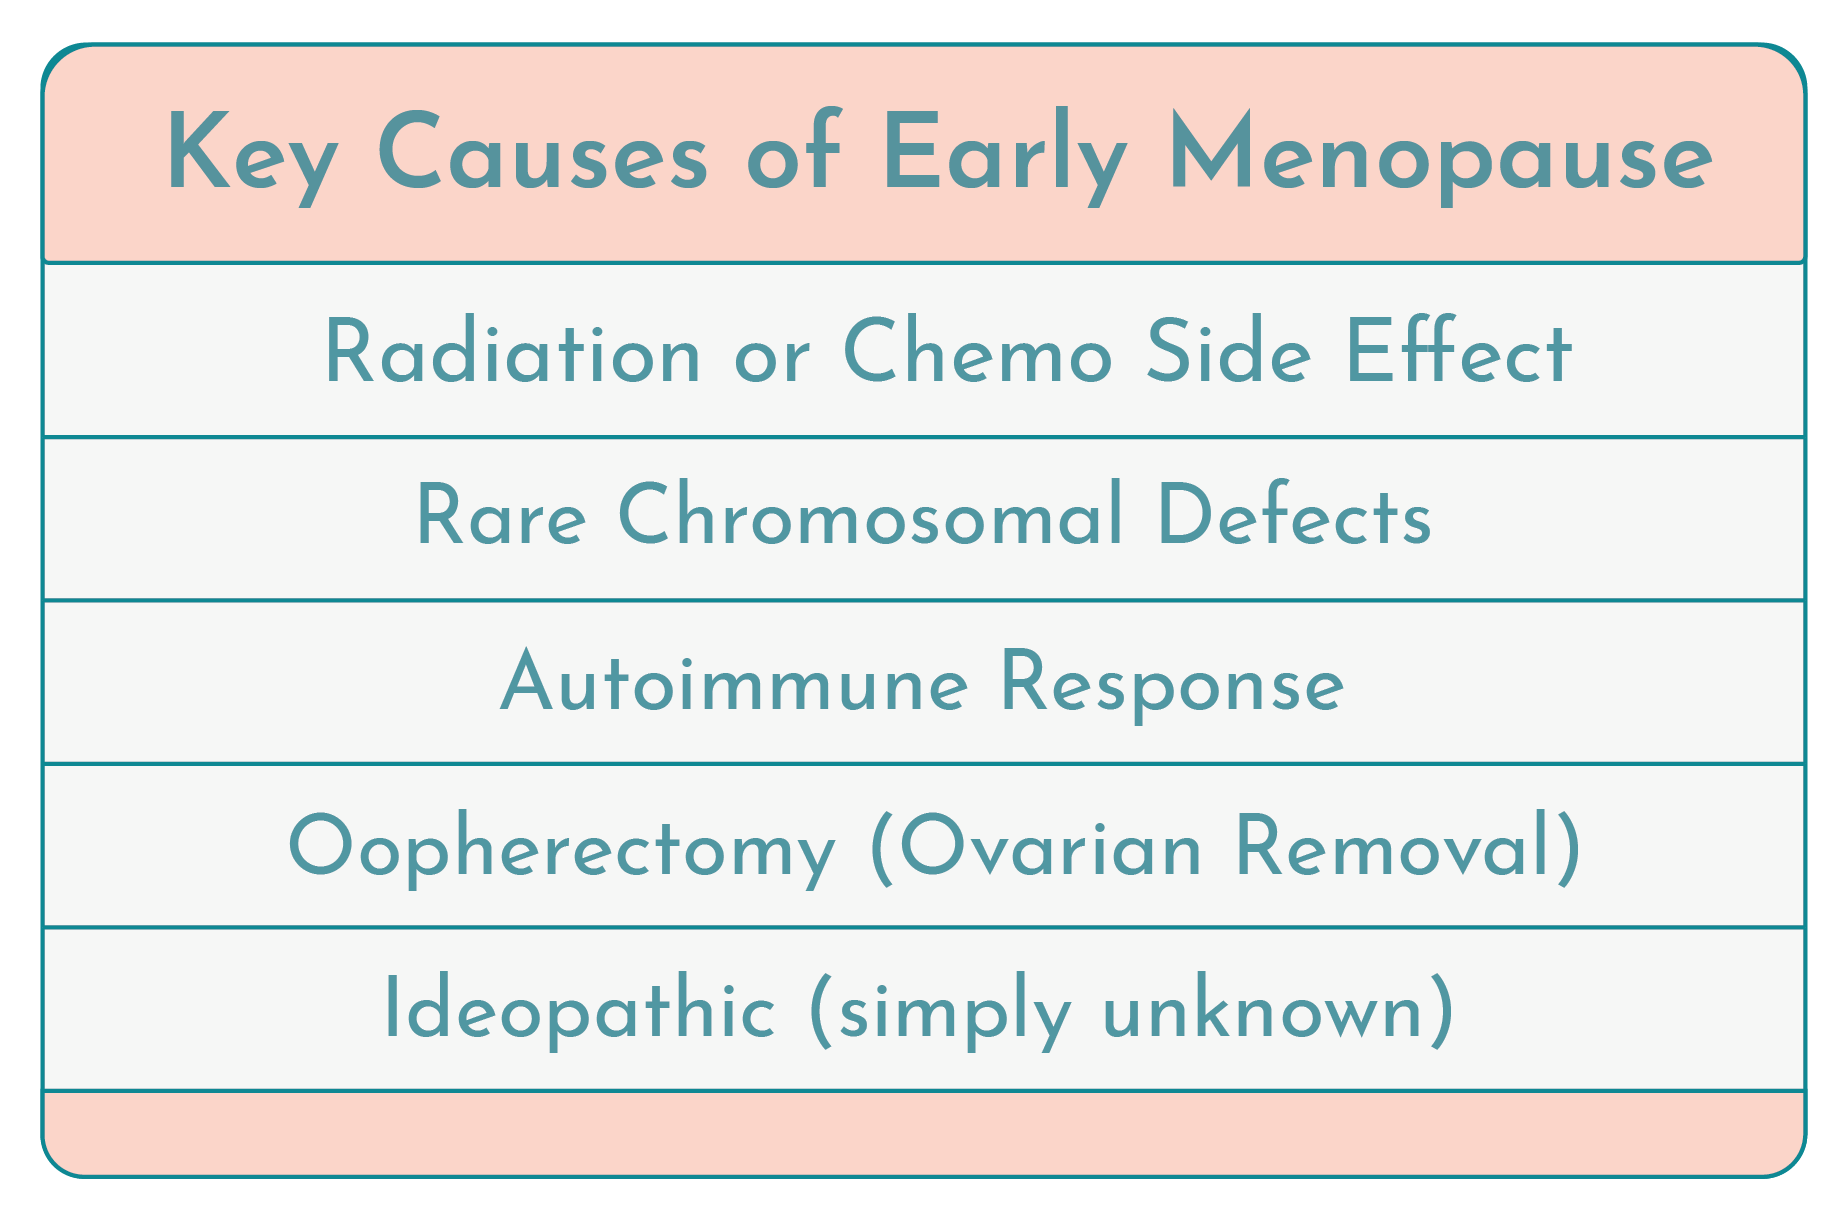 Key Causes of Early Menopause